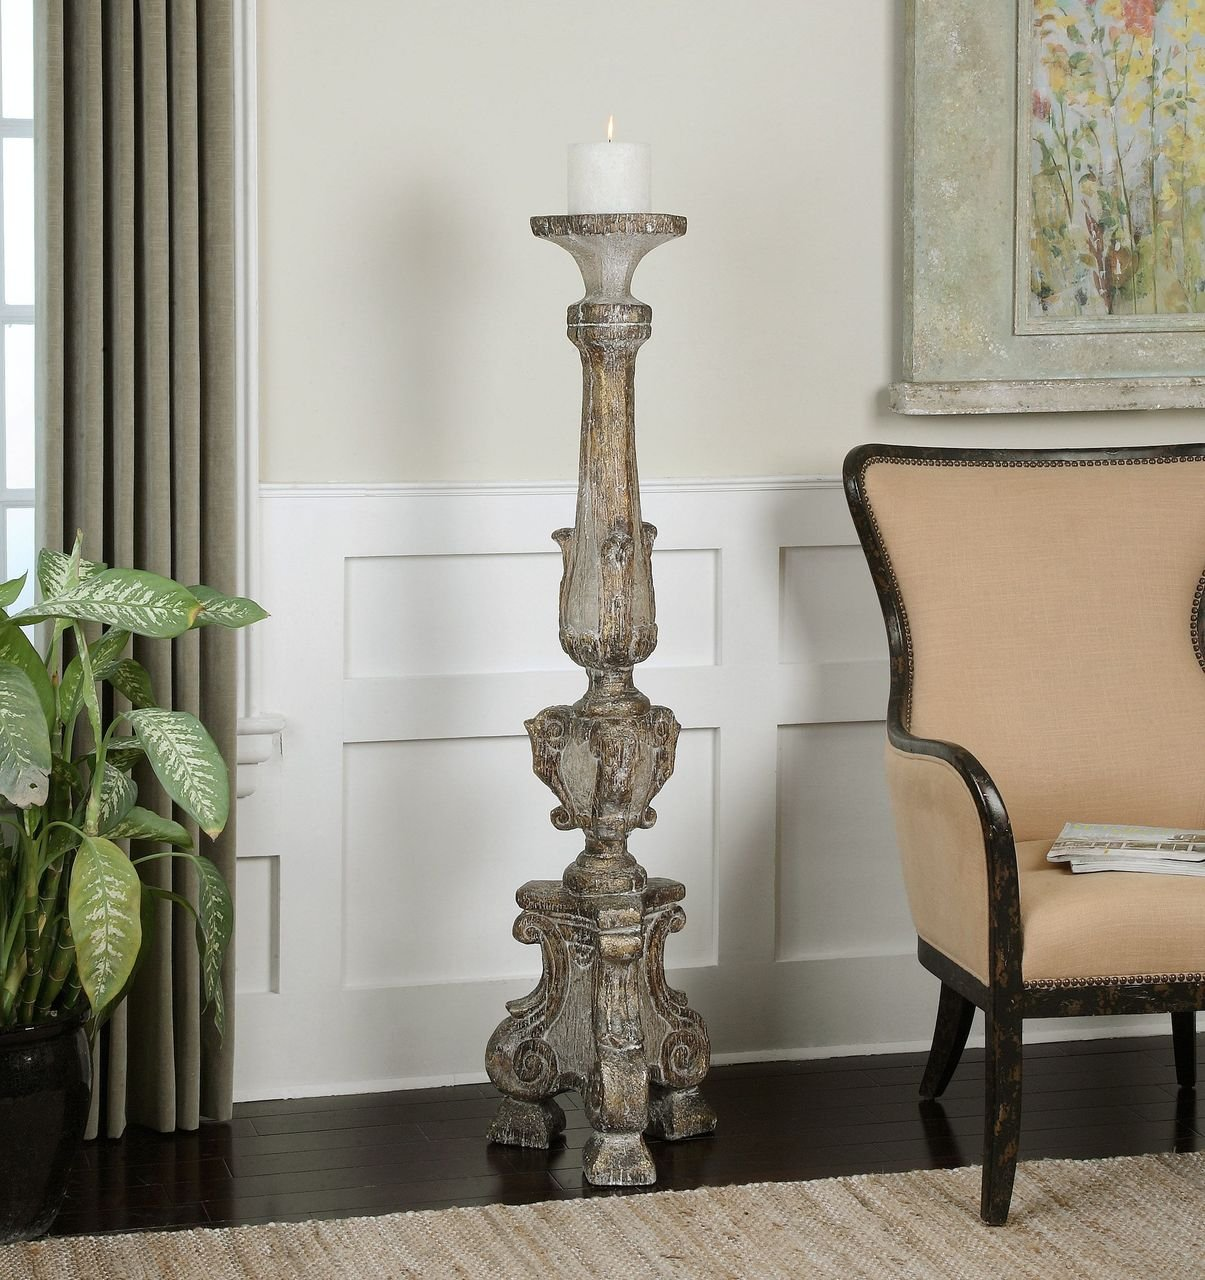 Amazon com oversize 57 floor candle holder old world tall distressed home kitchen